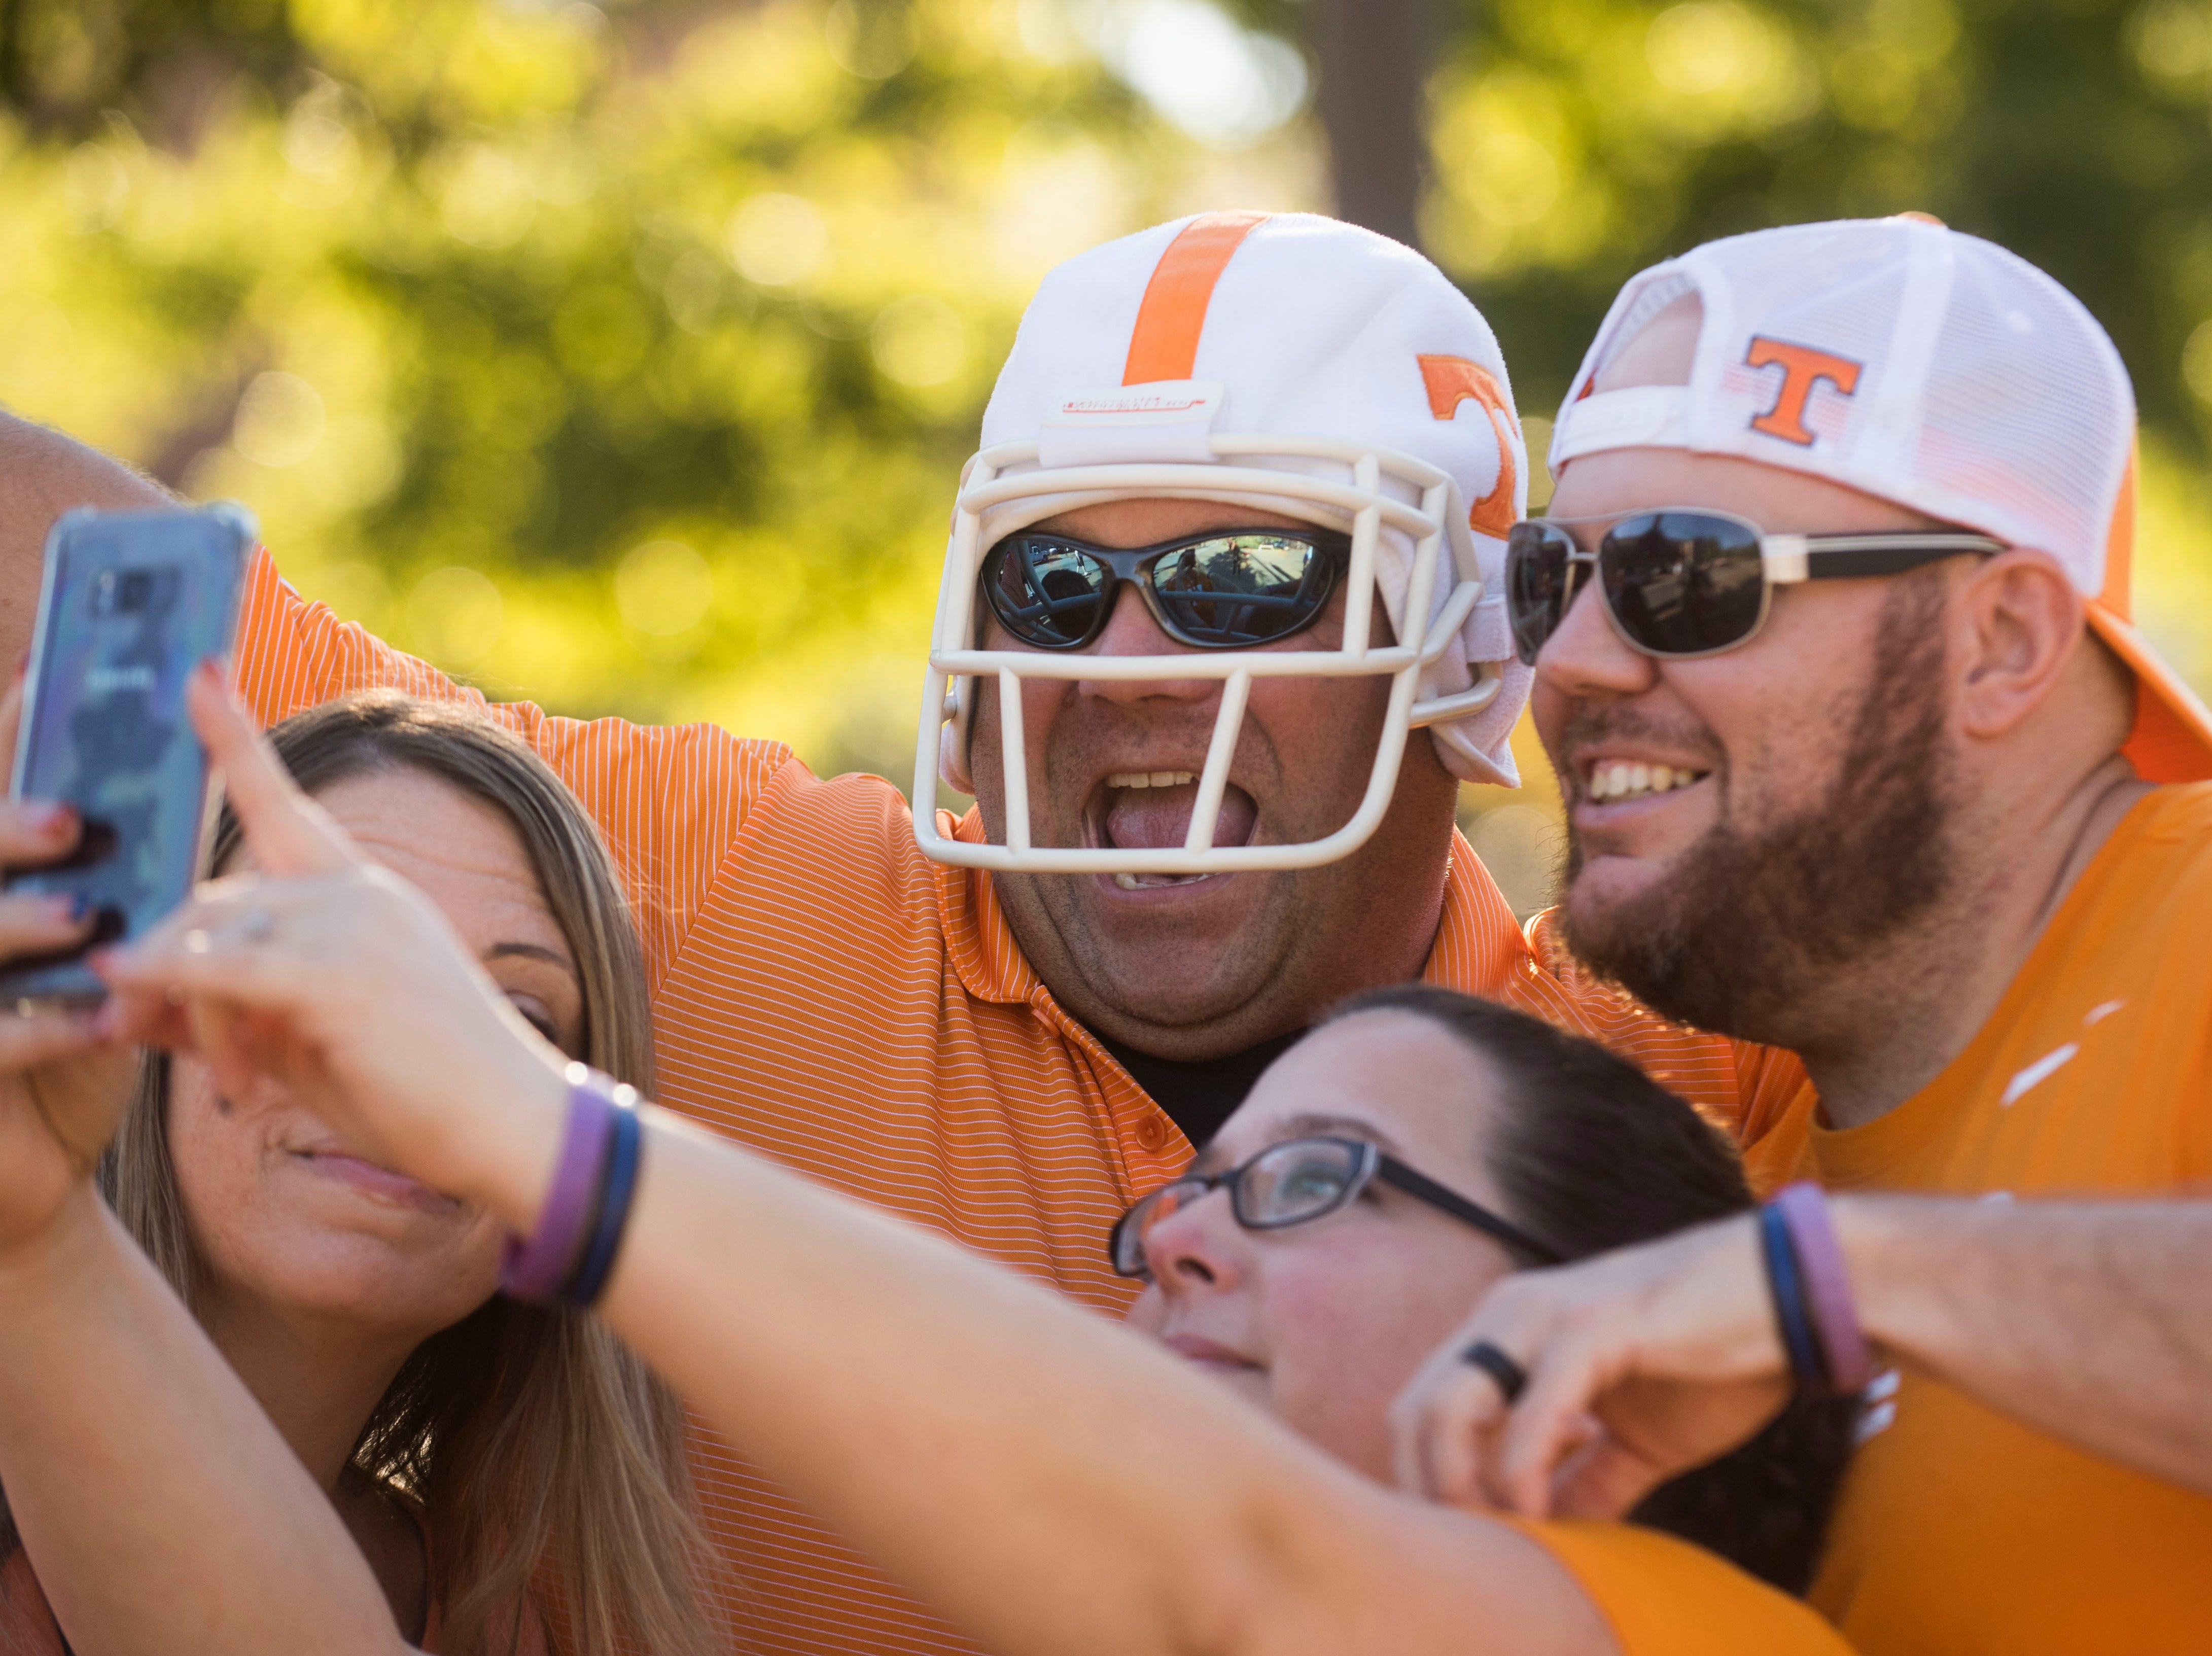 At left Derek Copeland, of Alcoa, Tenn. poses for a photo with friends before a game between Tennessee and Auburn at Jordan-Hare Stadium in Auburn, Ala. Saturday, Oct. 13, 2018.